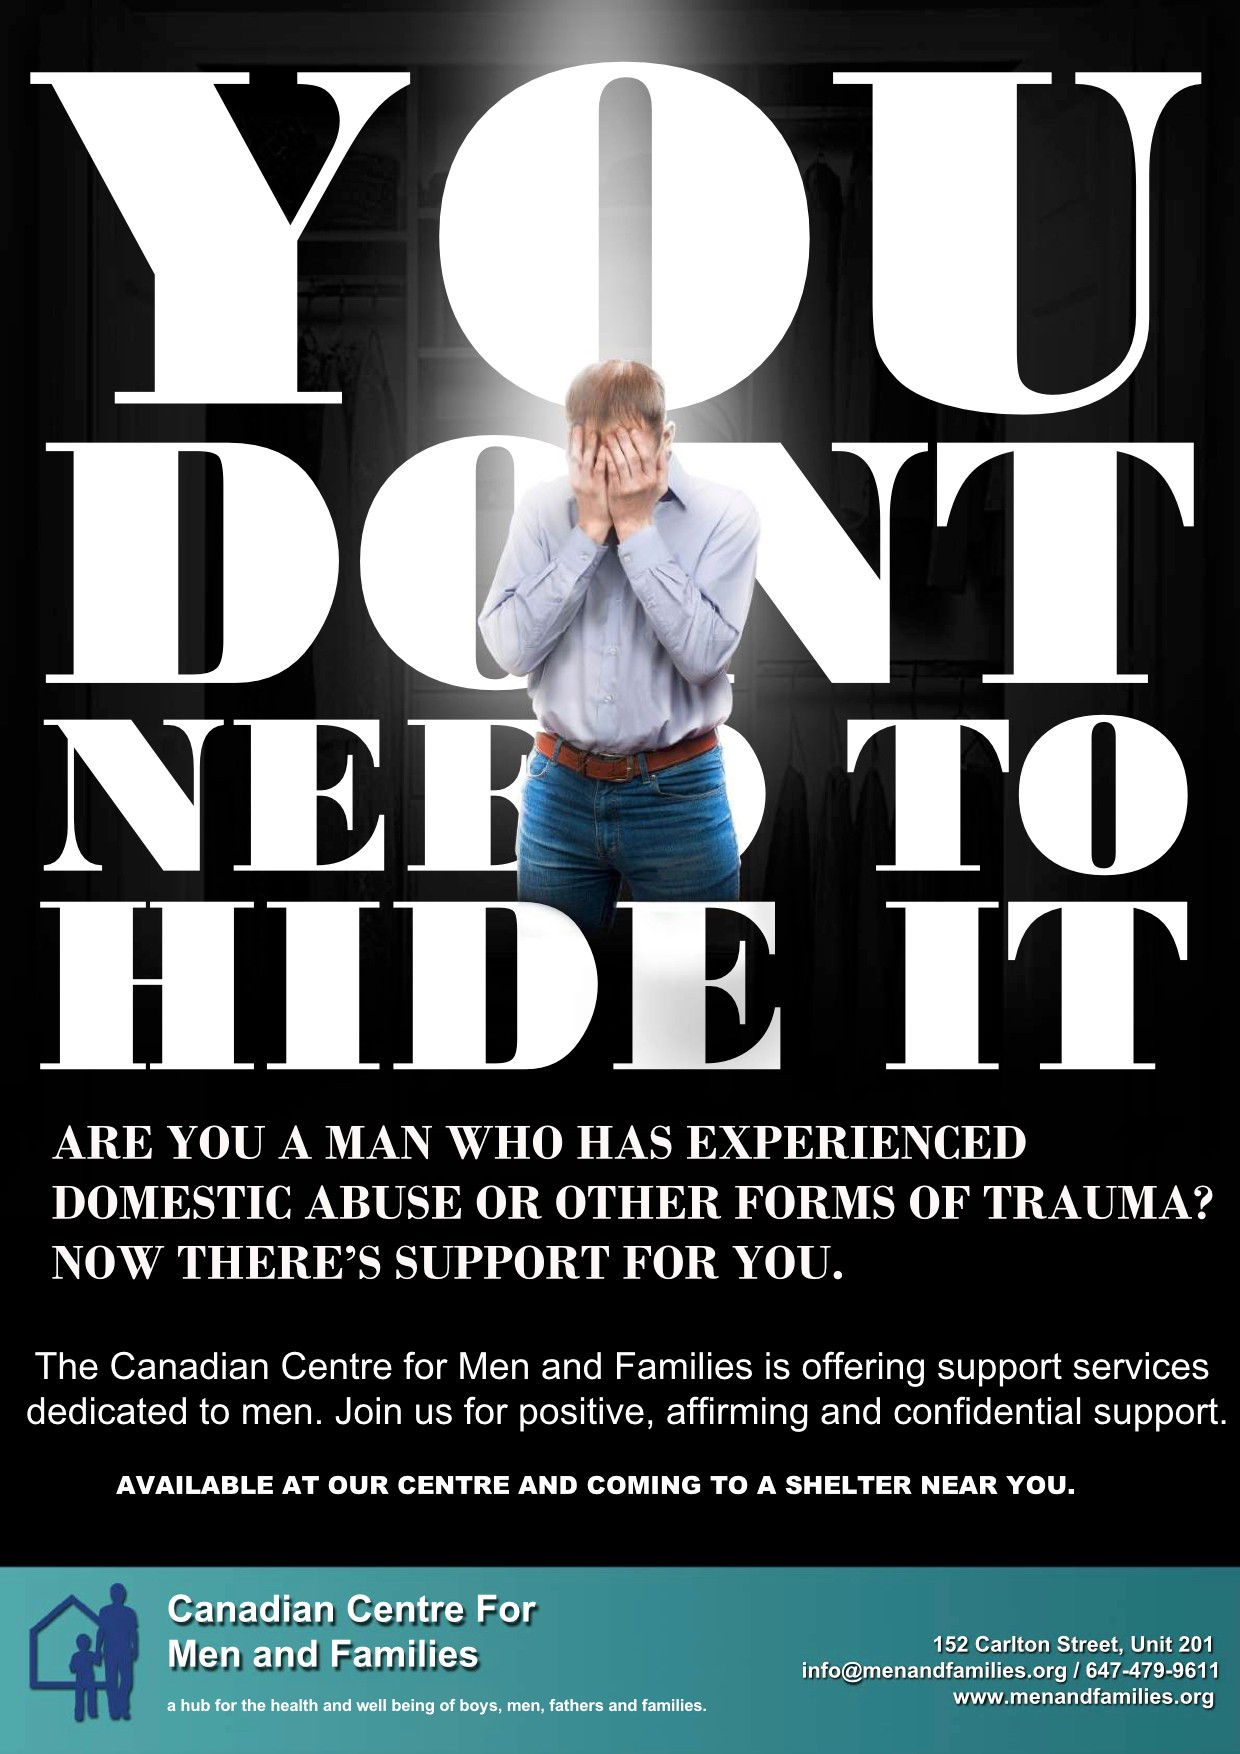 Program Domestic Abuse Violence And Trauma Support For